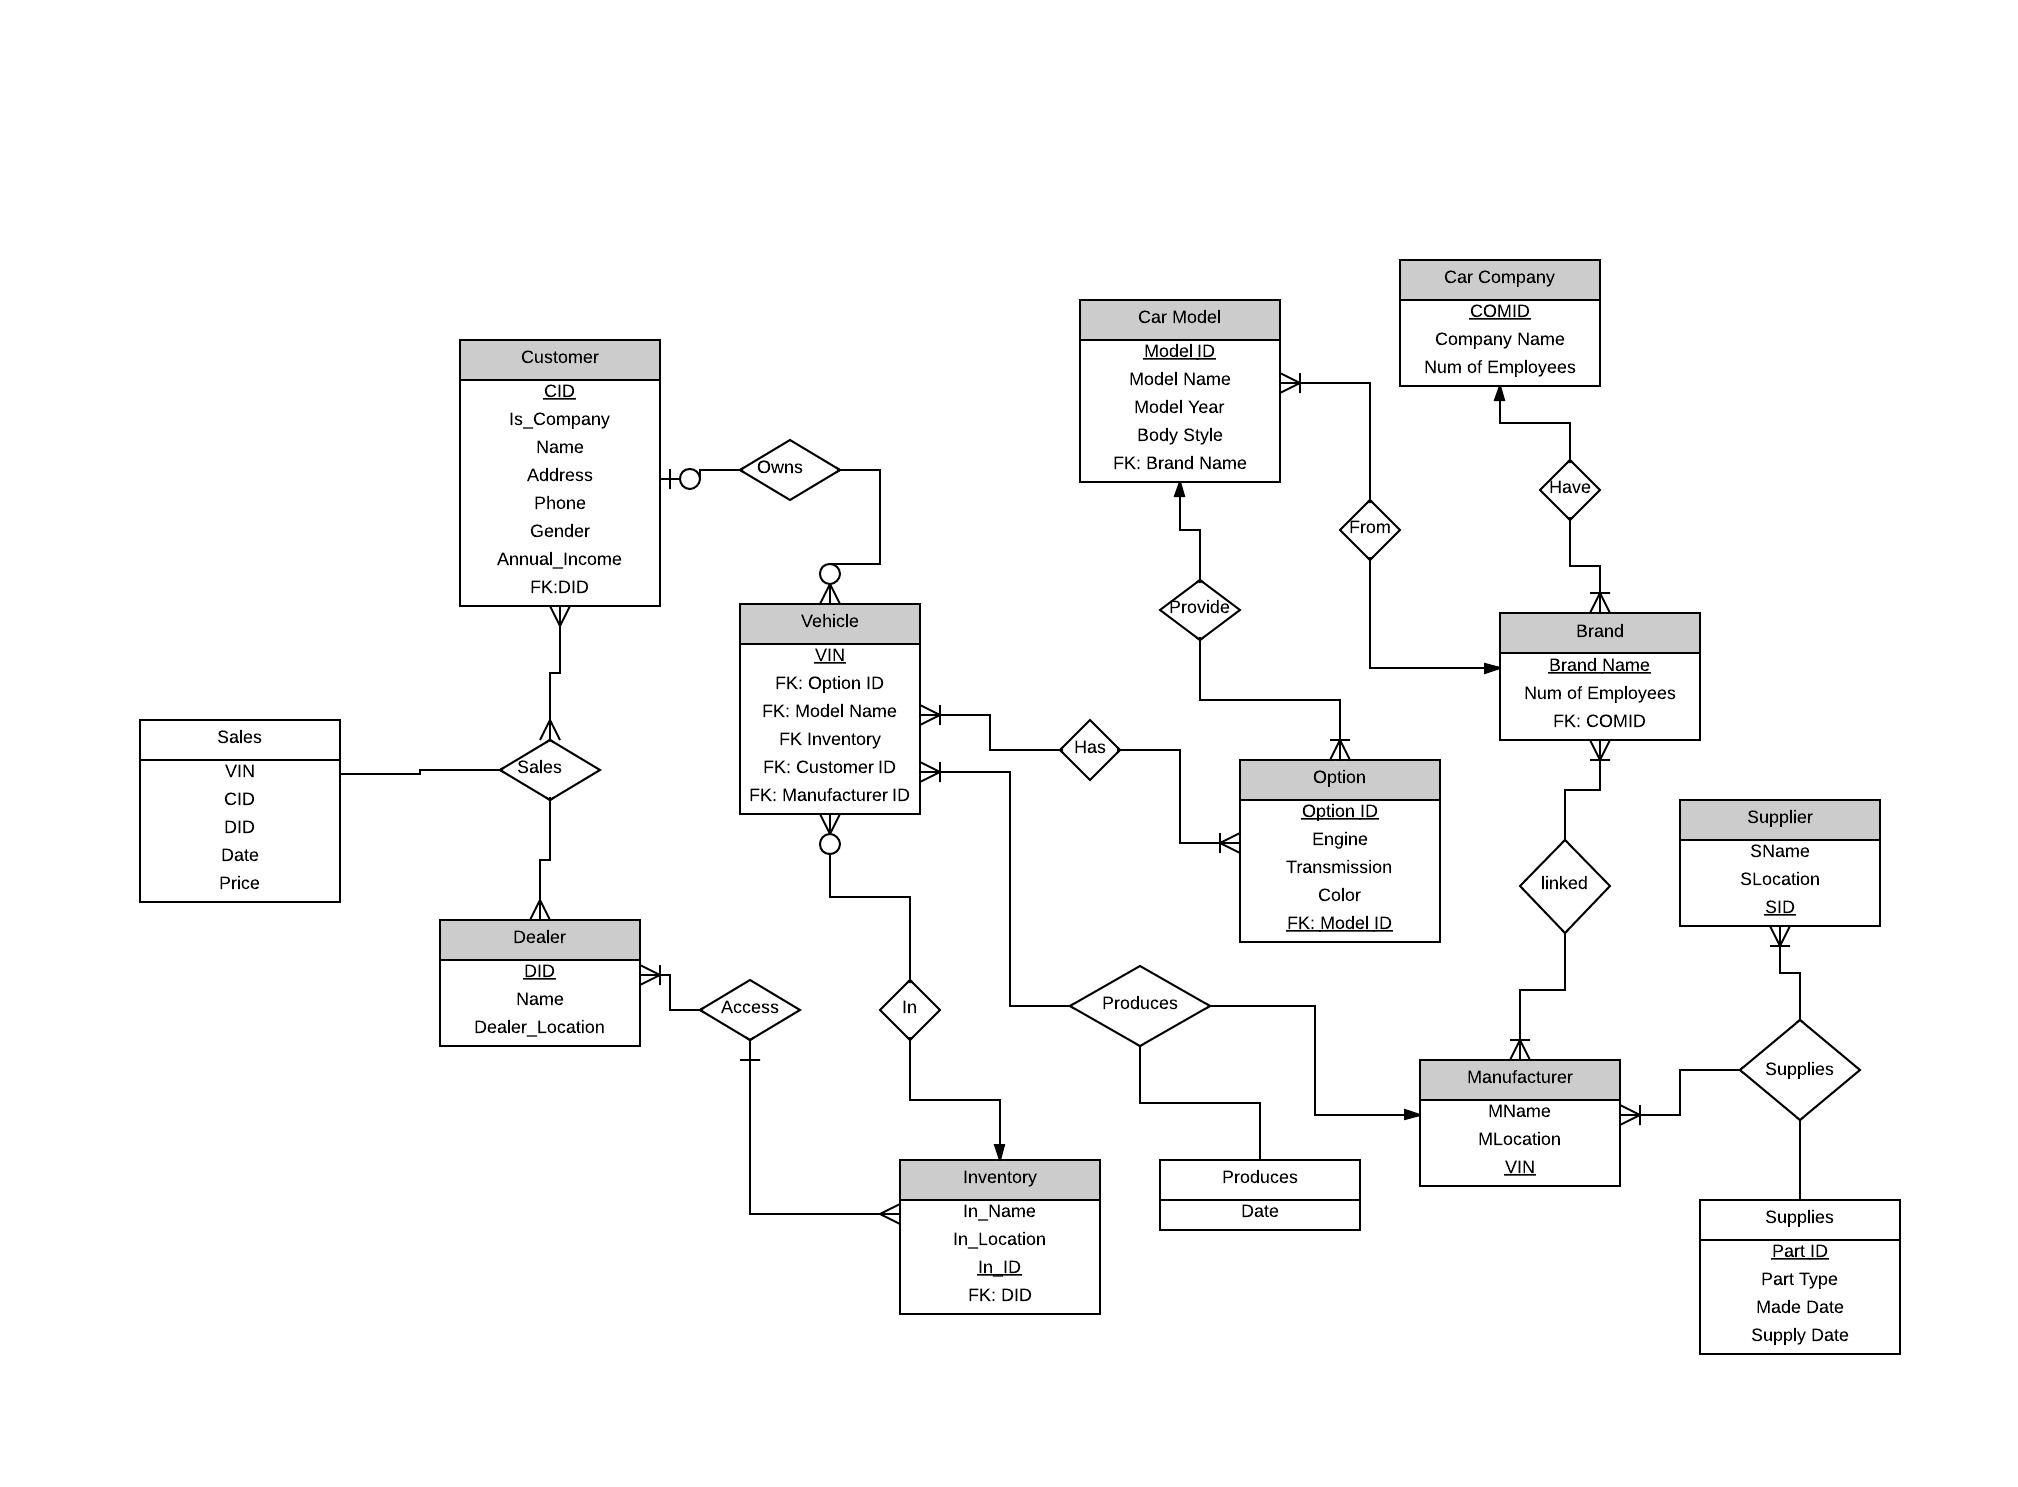 Need Help On An Er Diagram For An Automobile Company - Stack in Er Diagram Business